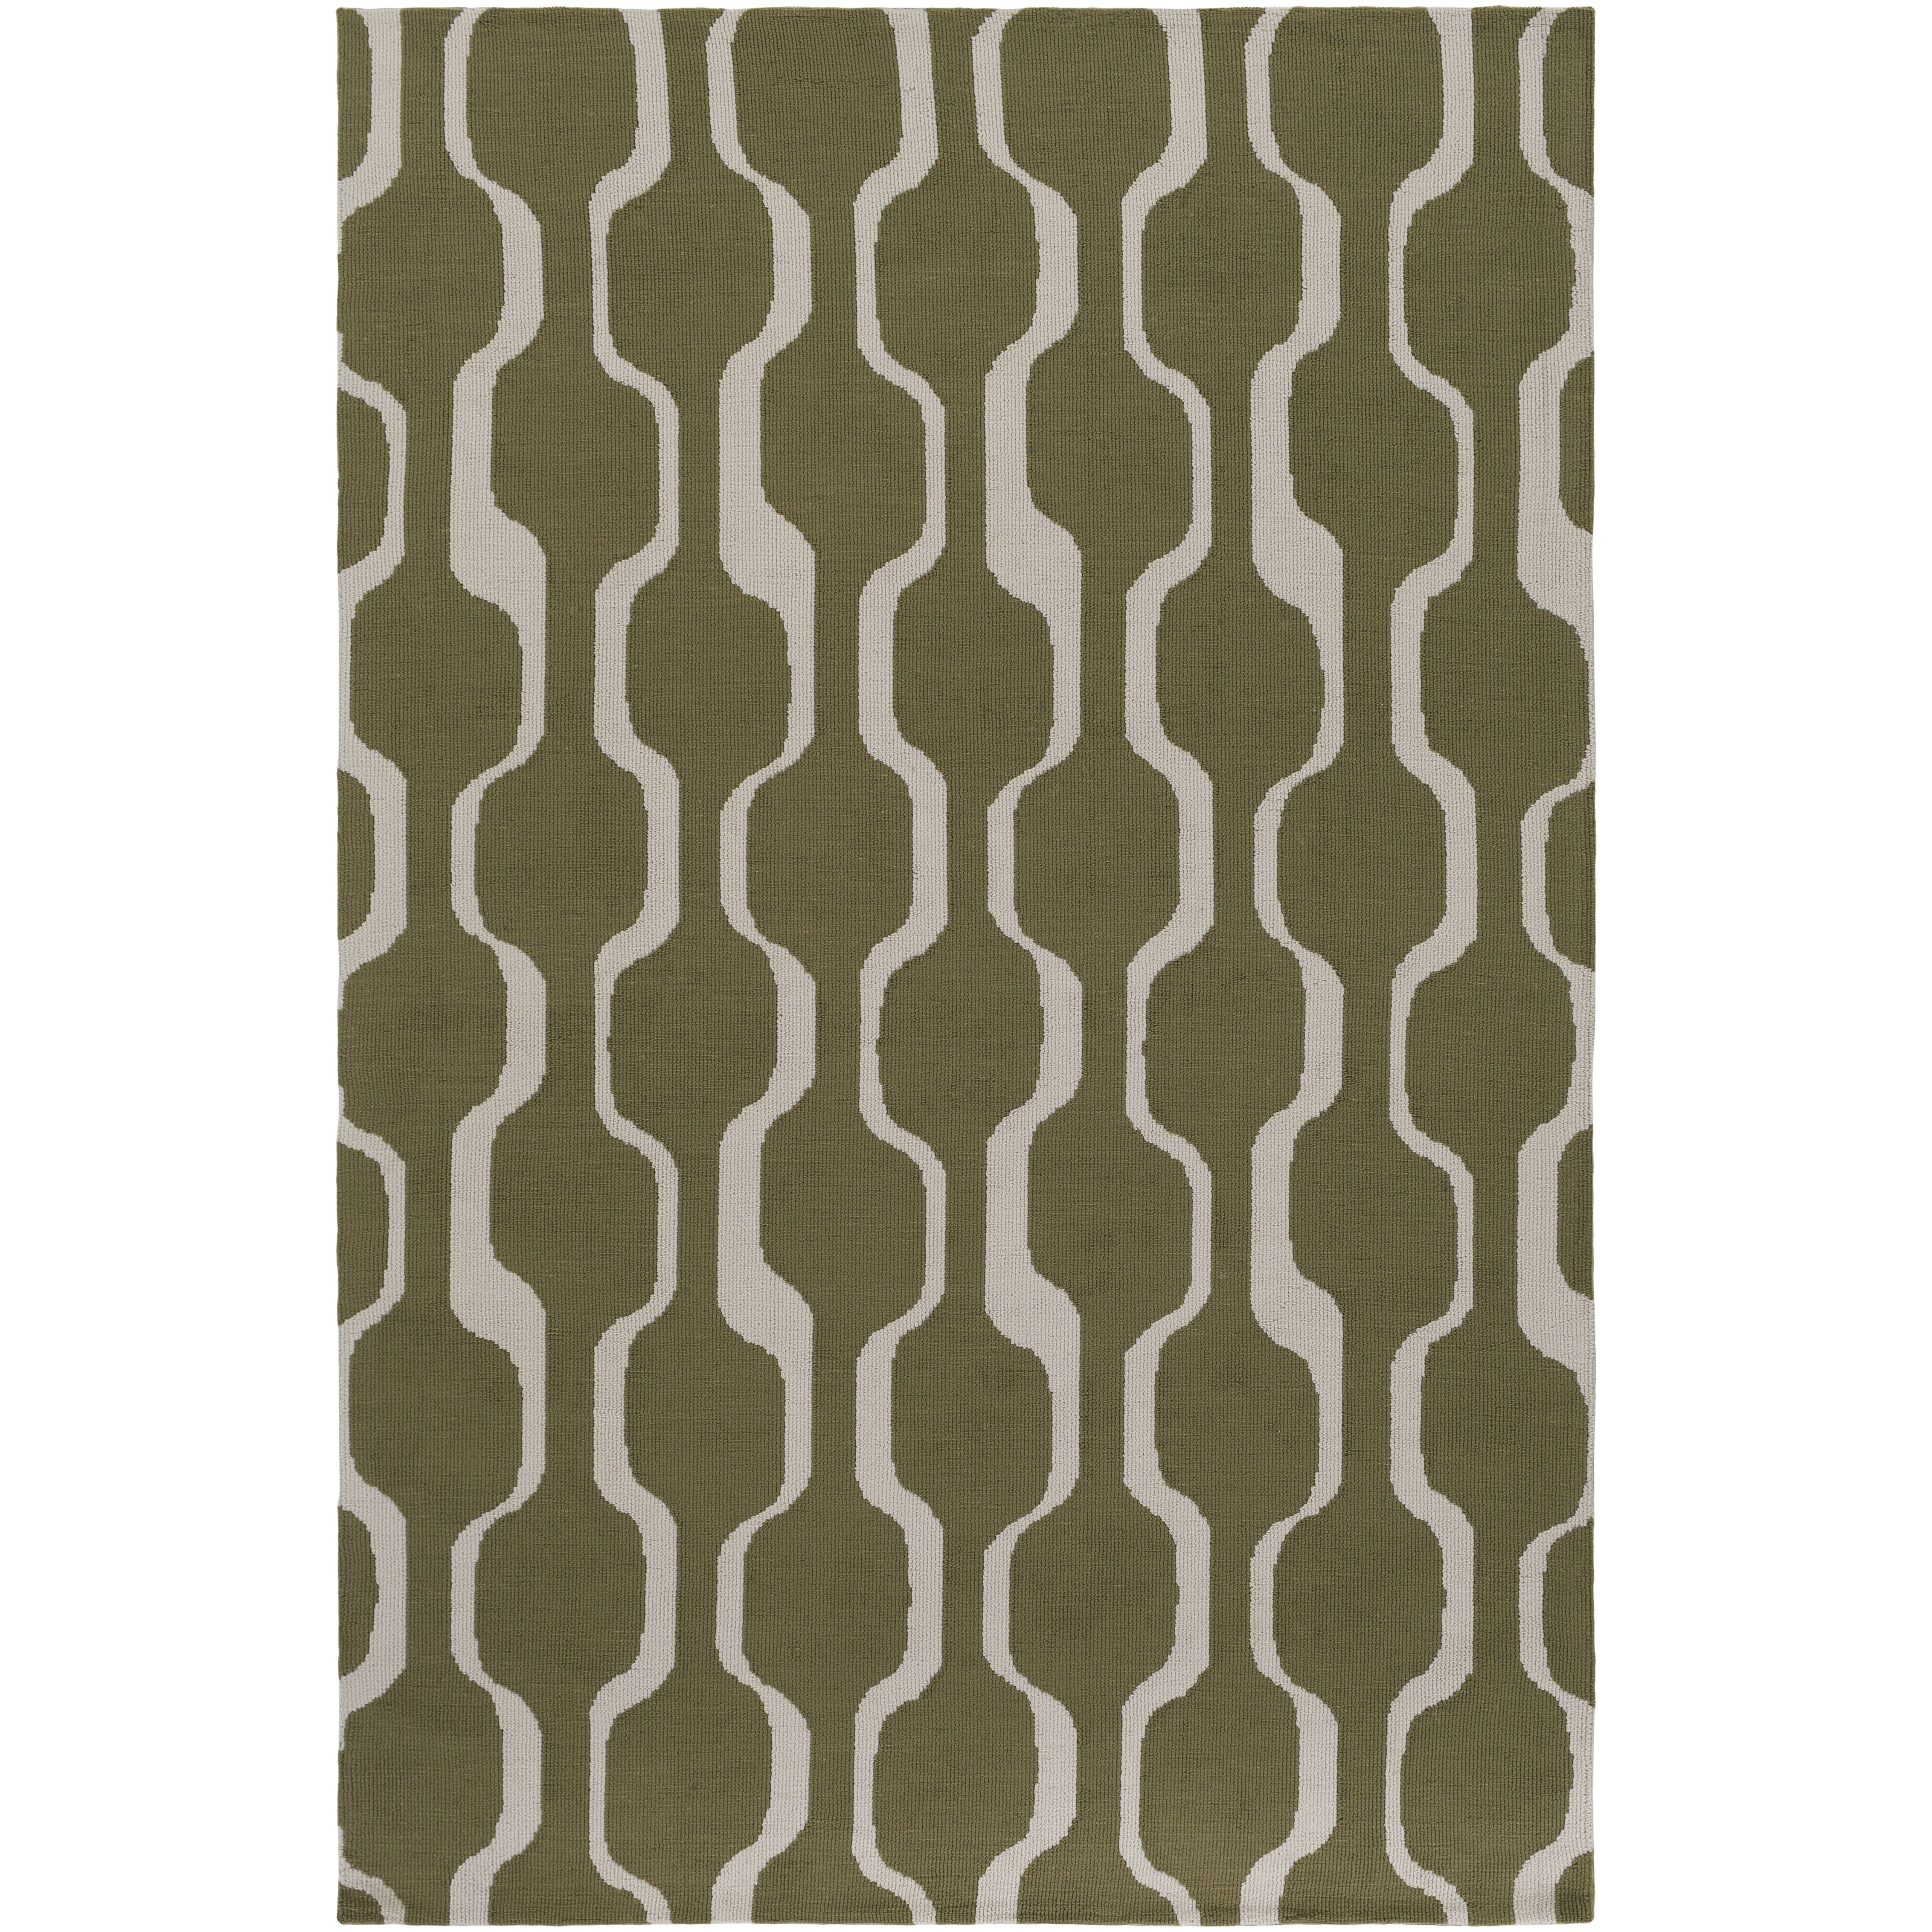 Olive Green Area Rugs Roselawnlutheran For Olive Green Rugs (Image 7 of 15)